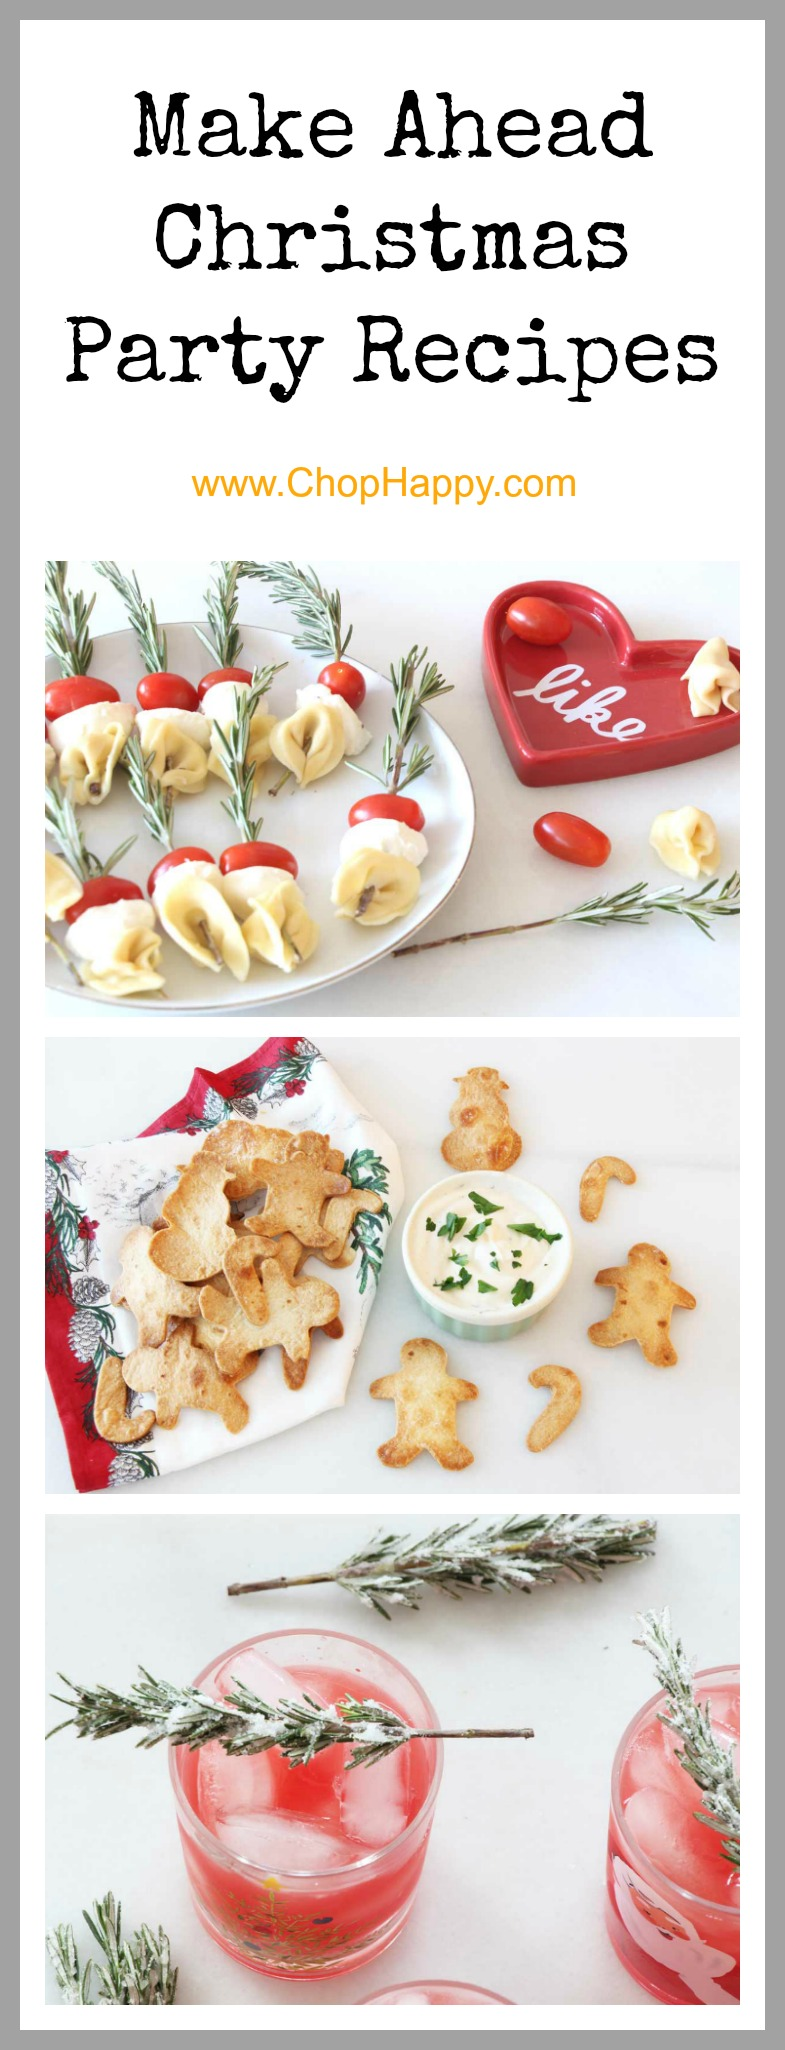 Make Ahead Christmas Party Recipes - that are super easy, fun, and filled with comfort food love for your family and friends. www.ChopHappy.com #ChristmasRecipe